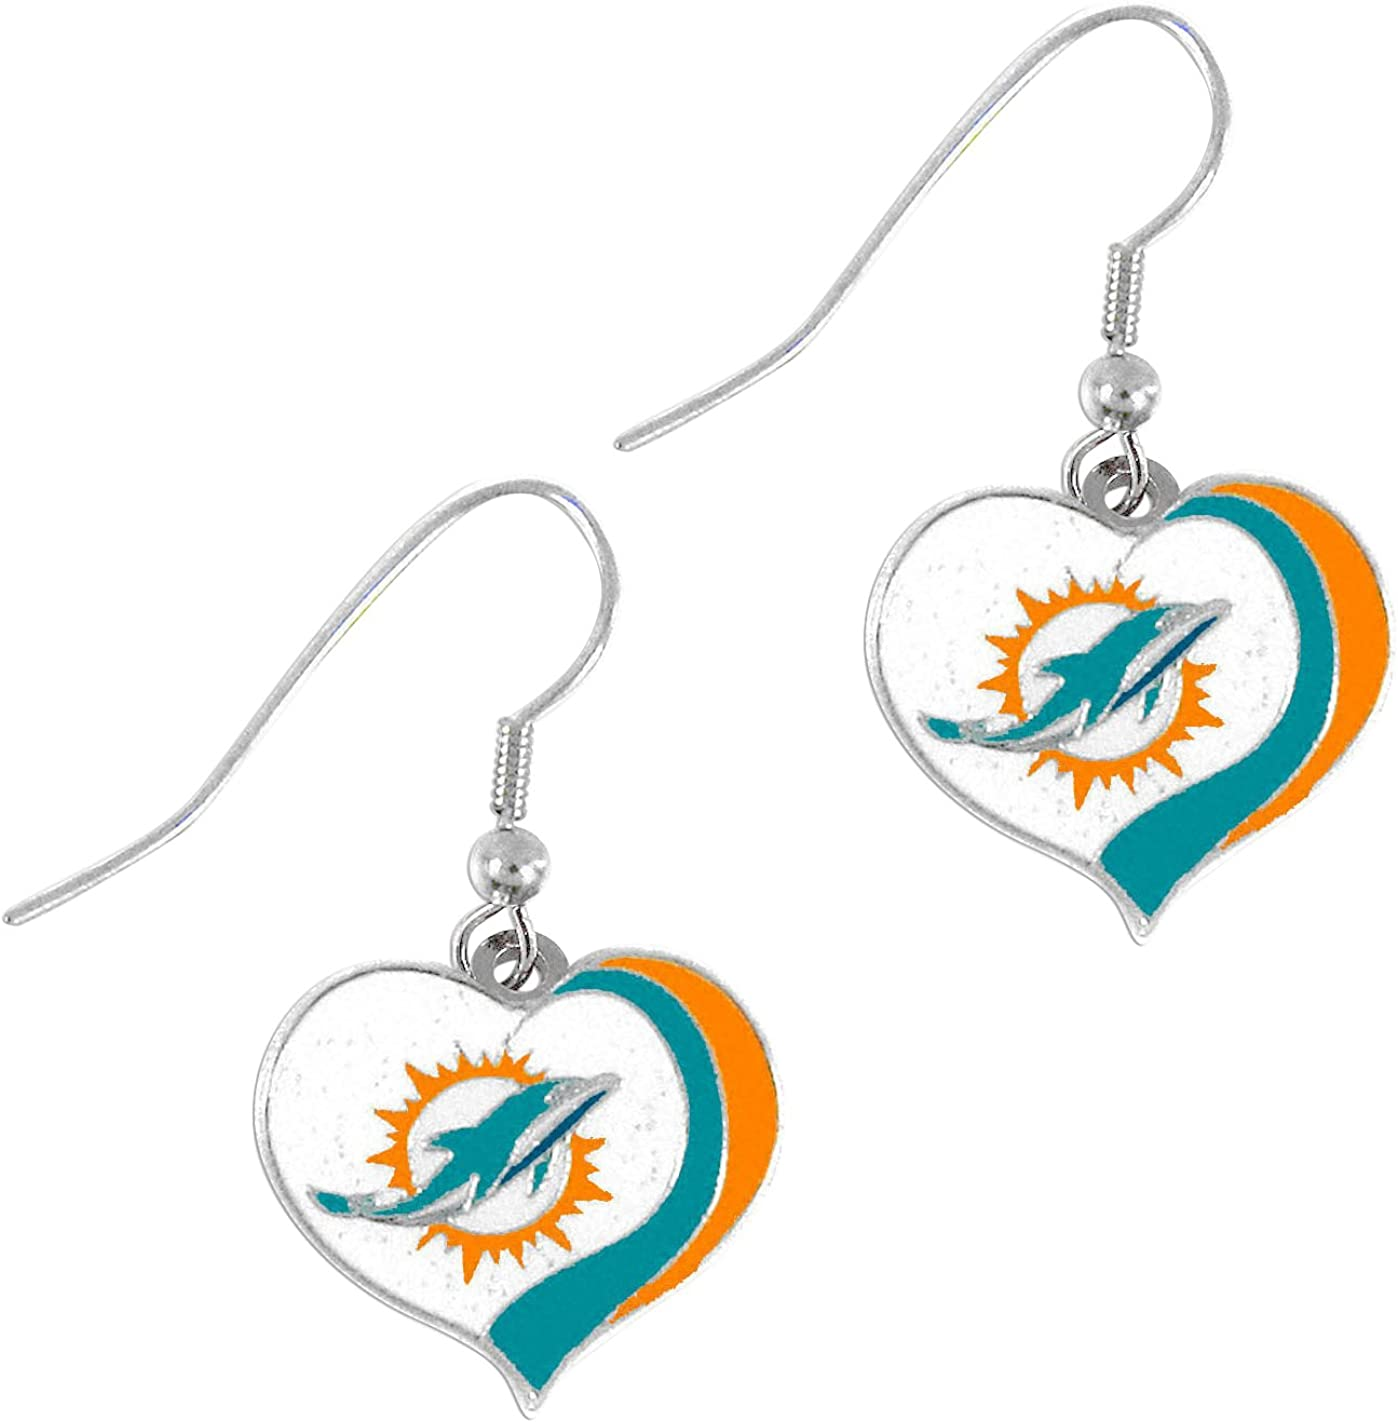 O PSG NFL Miami Dolphins Miami Dolphins Earrings Glitter Heart Teal Small